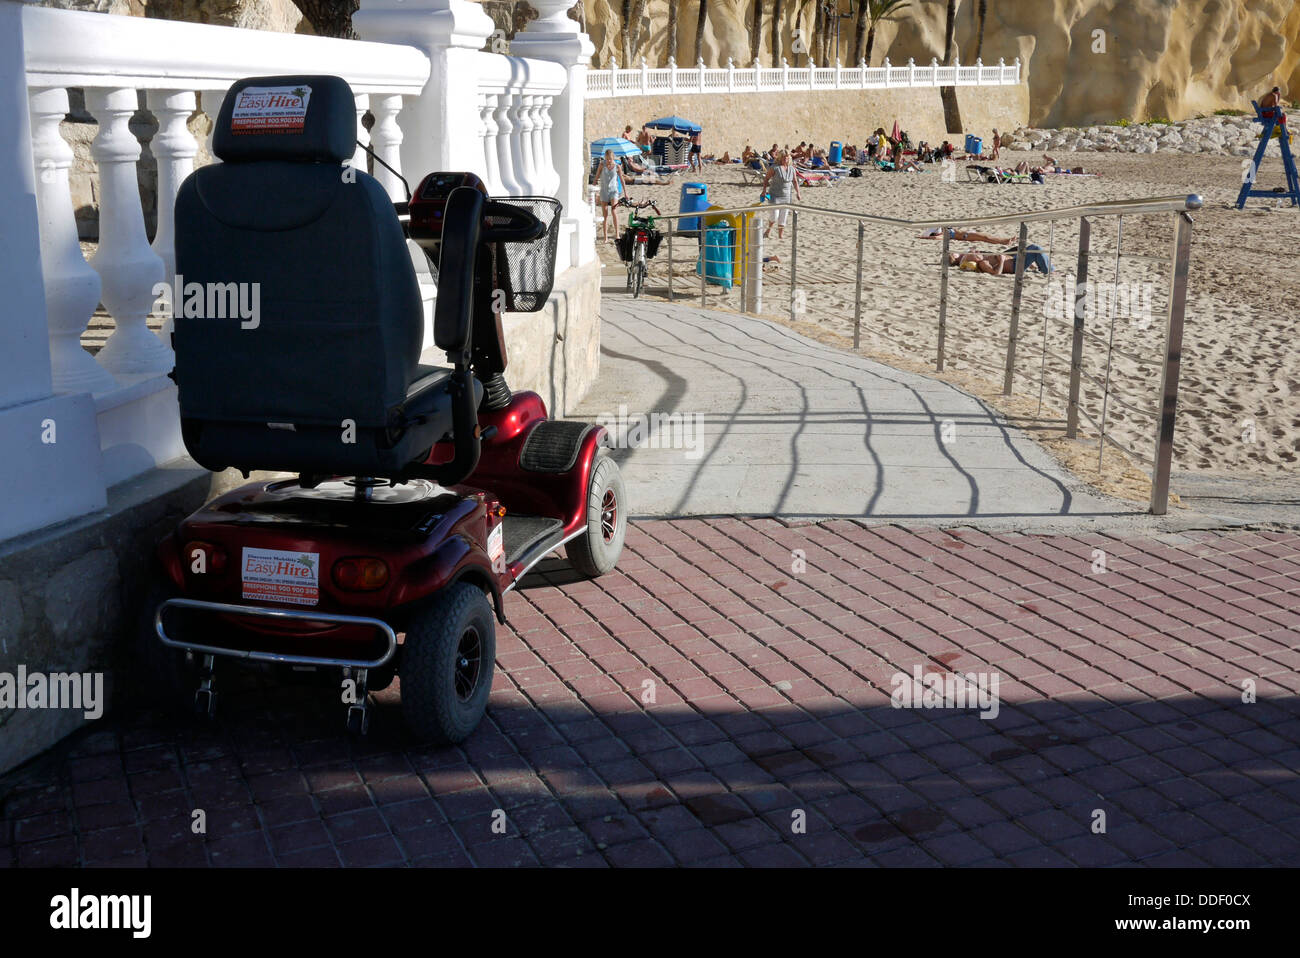 disability access to the Beach in Benidorm Costa Blanca Spain - Stock Image